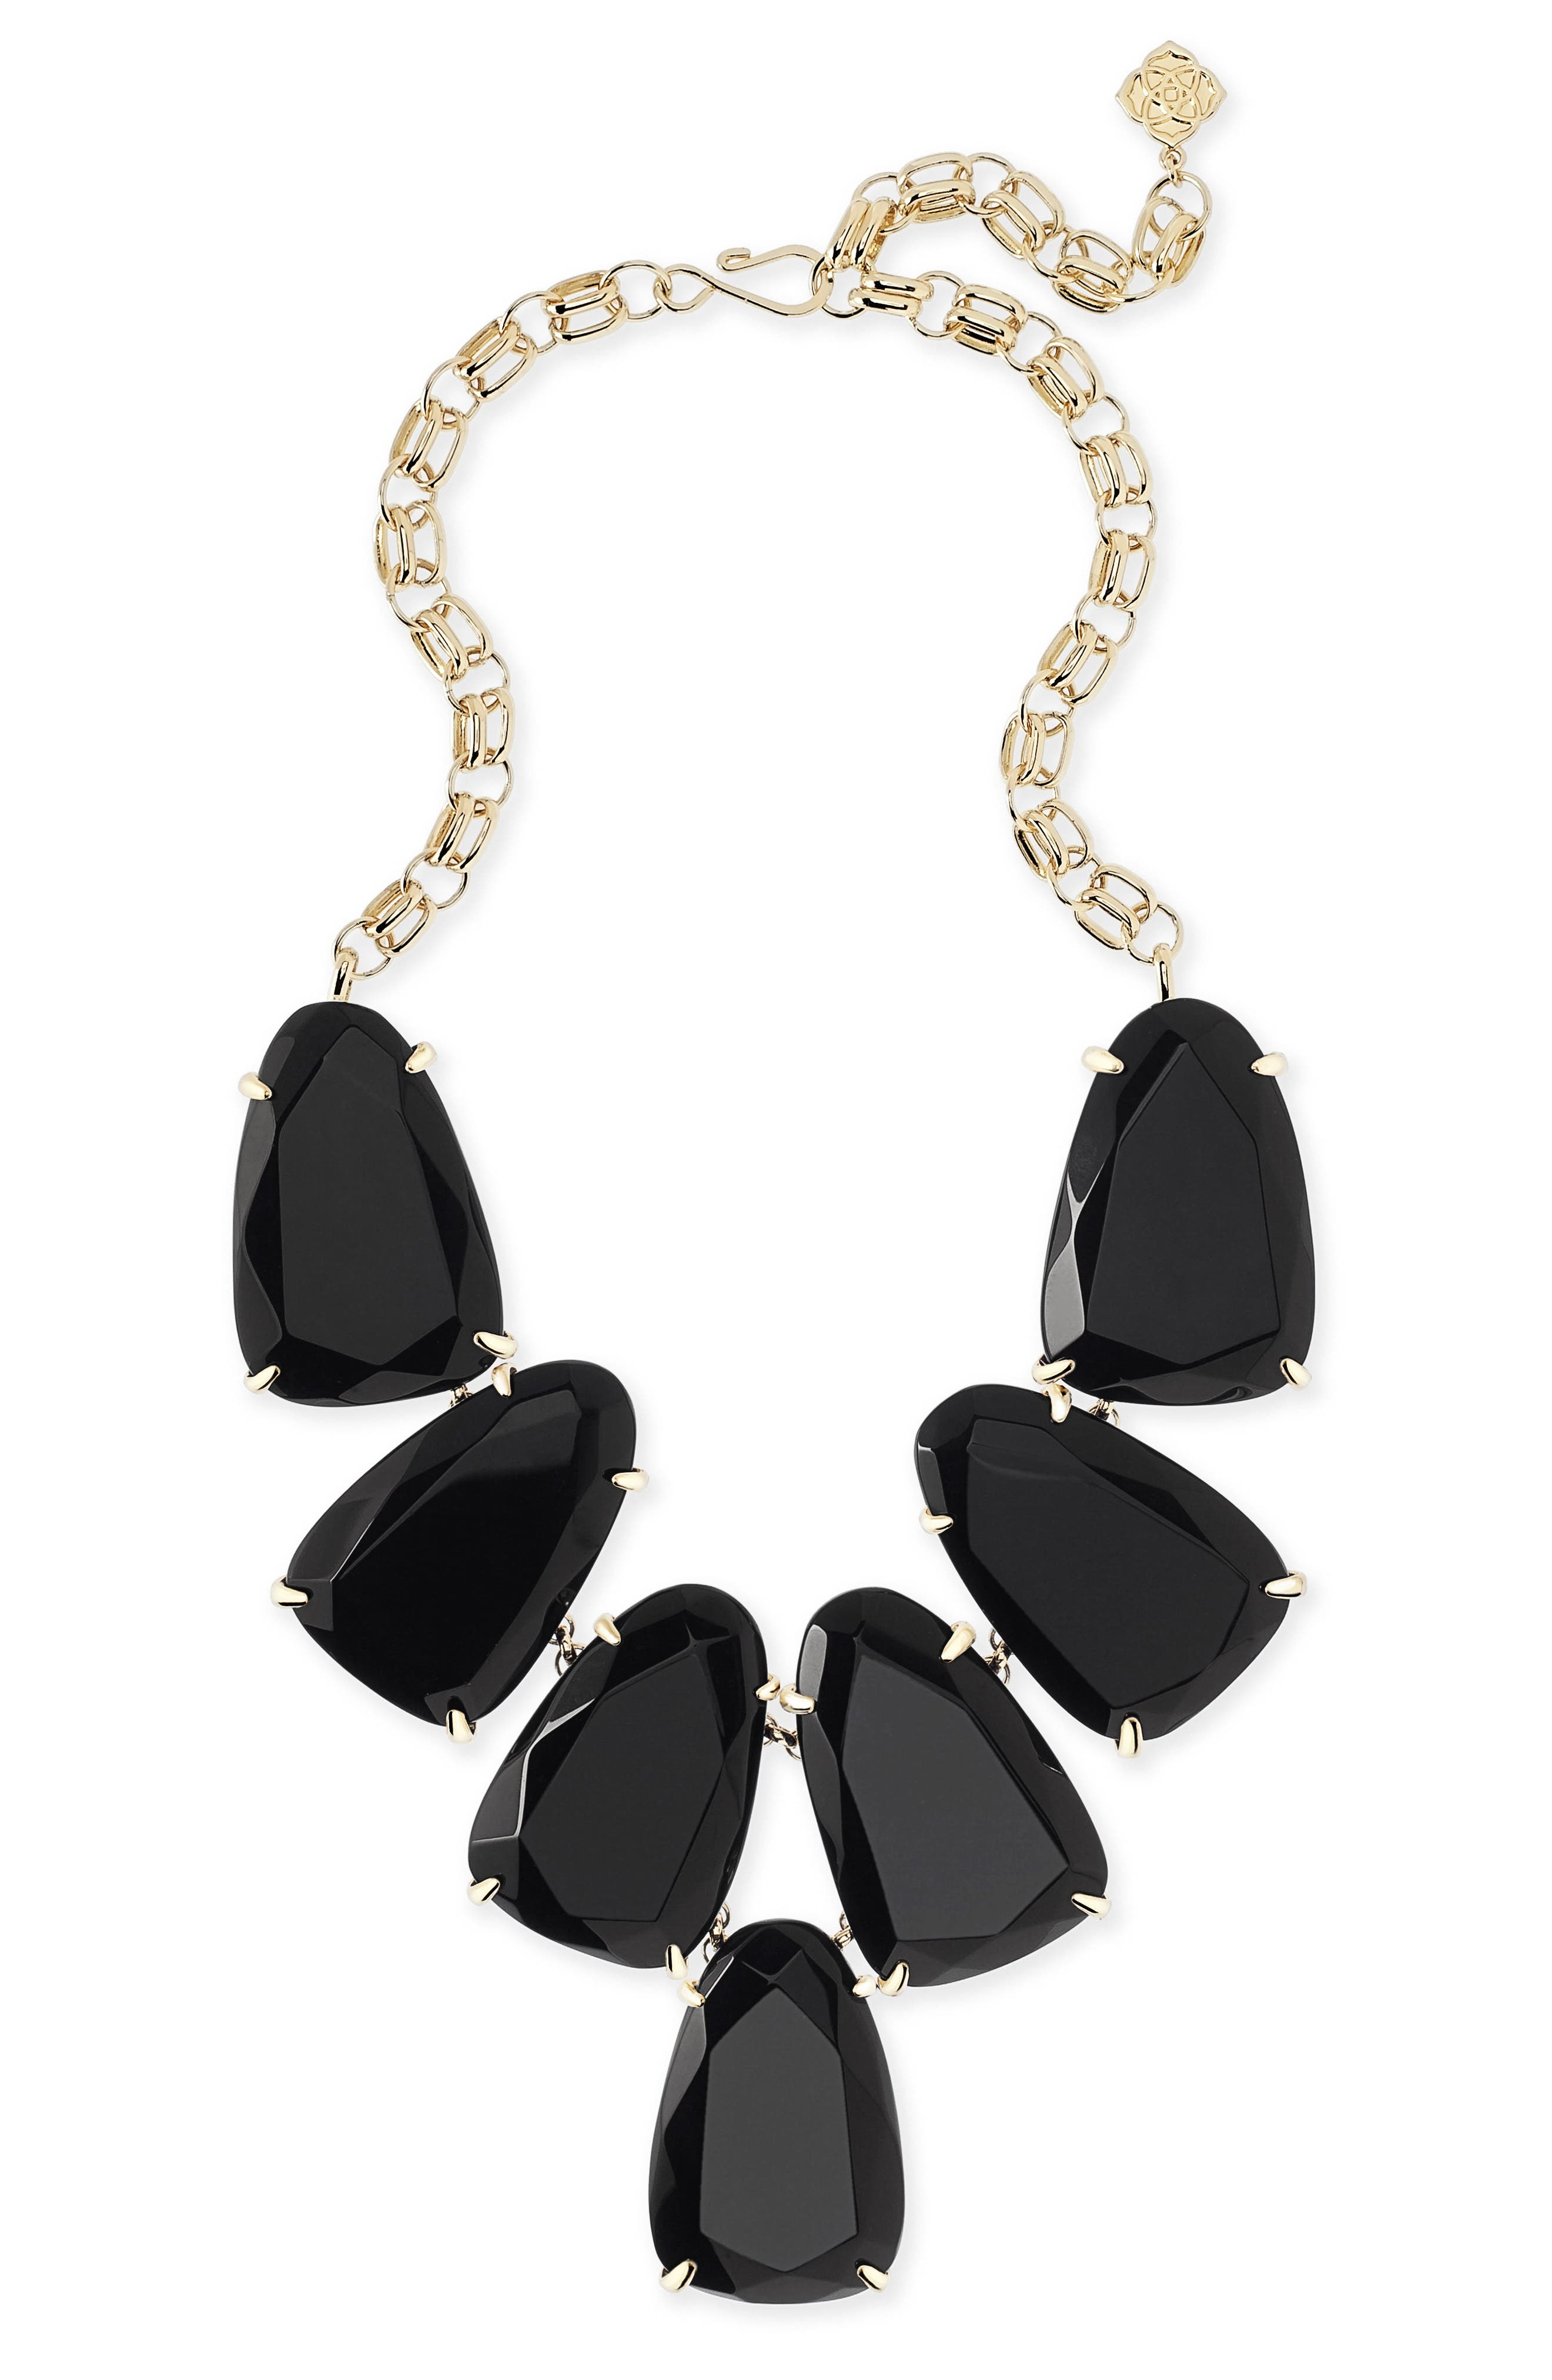 Harlow Necklace,                             Main thumbnail 1, color,                             Black Onyx/ Gold